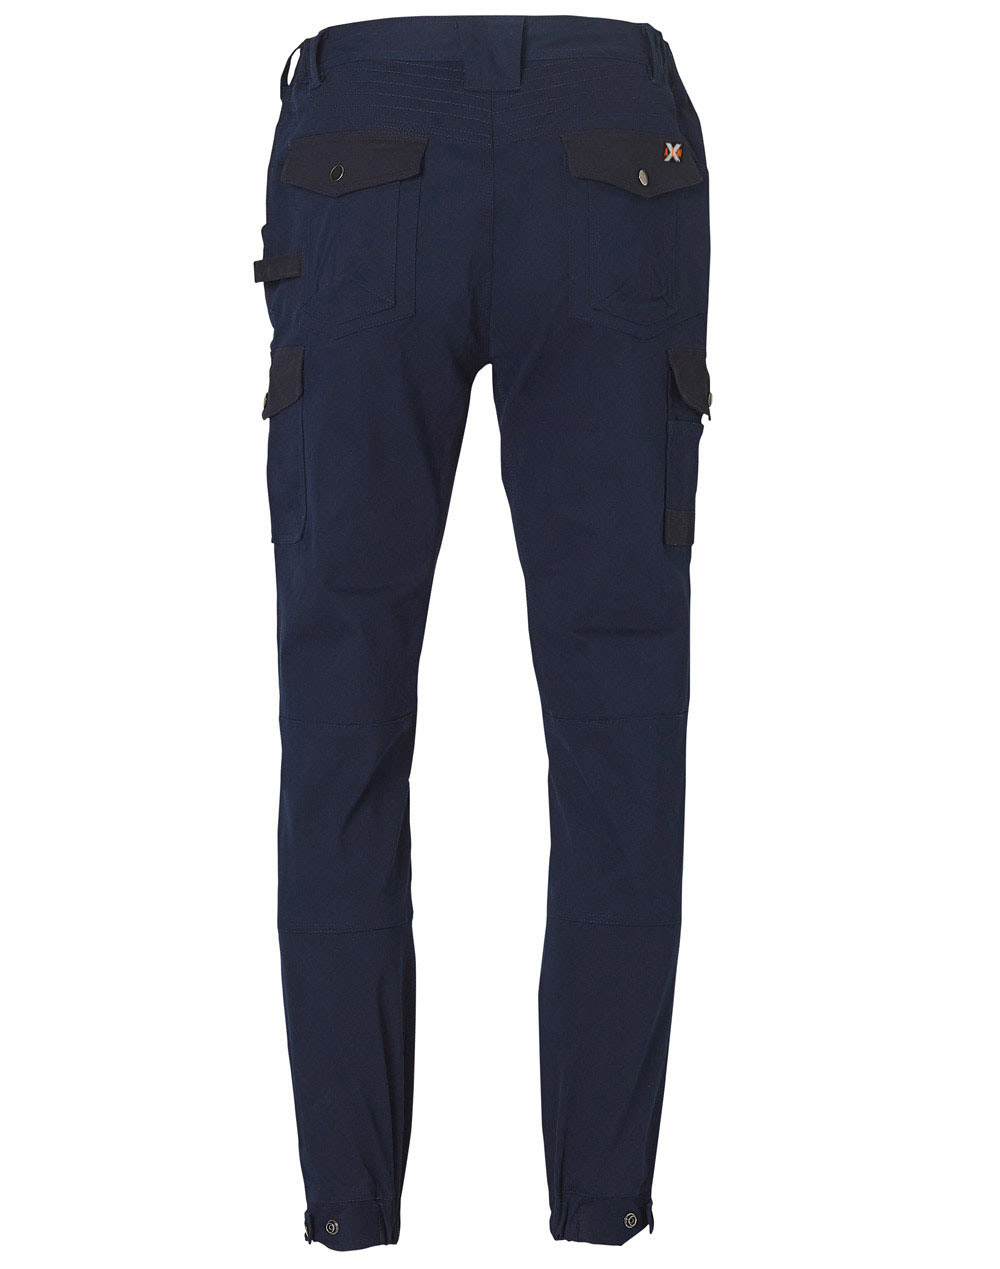 https://s3-ap-southeast-1.amazonaws.com/ws-imgs/WORKWEAR/WP22_Navy_Back.jpg